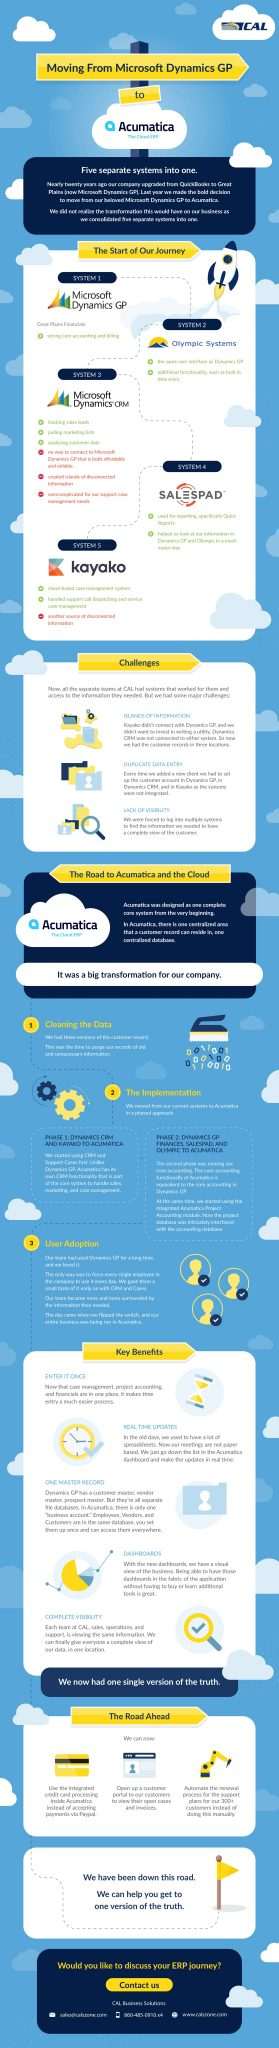 Moving From Microsoft Dynamics GP to Acumatica Cloud ERP